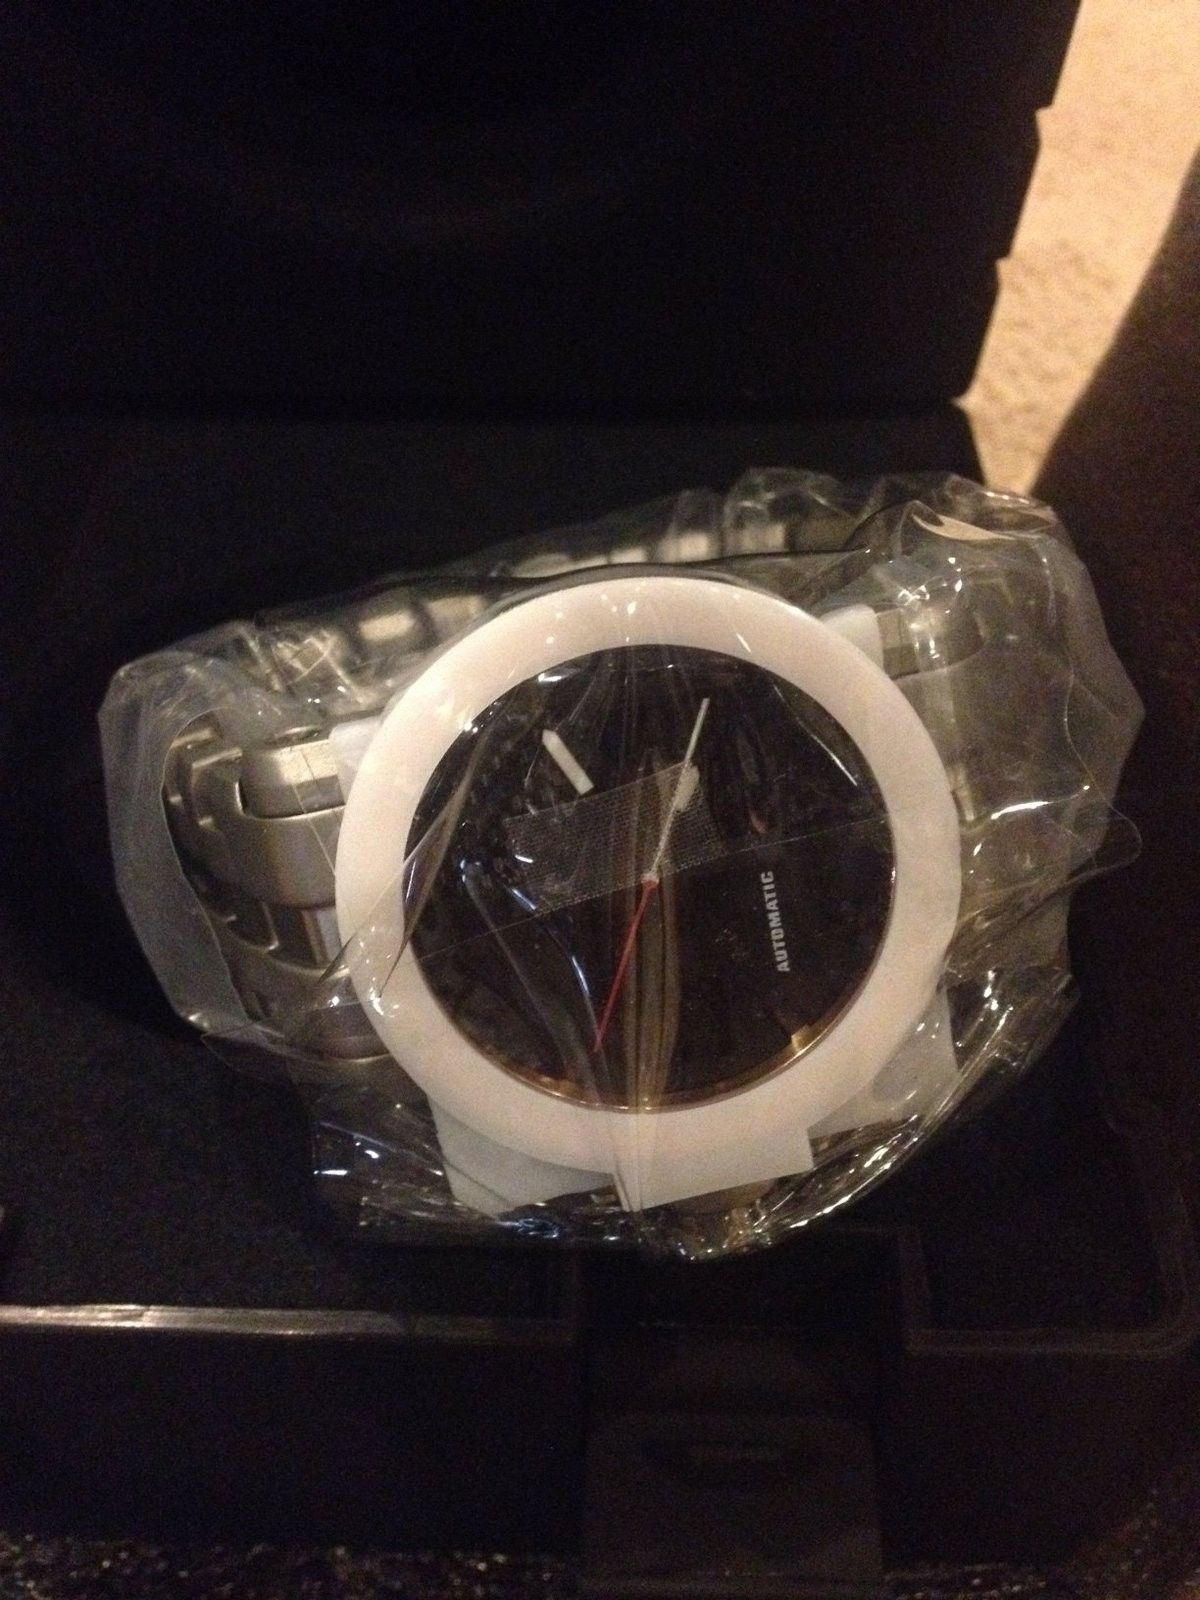 Gearbox Automatic--Titanium Band--New in Box - photo 2.JPG